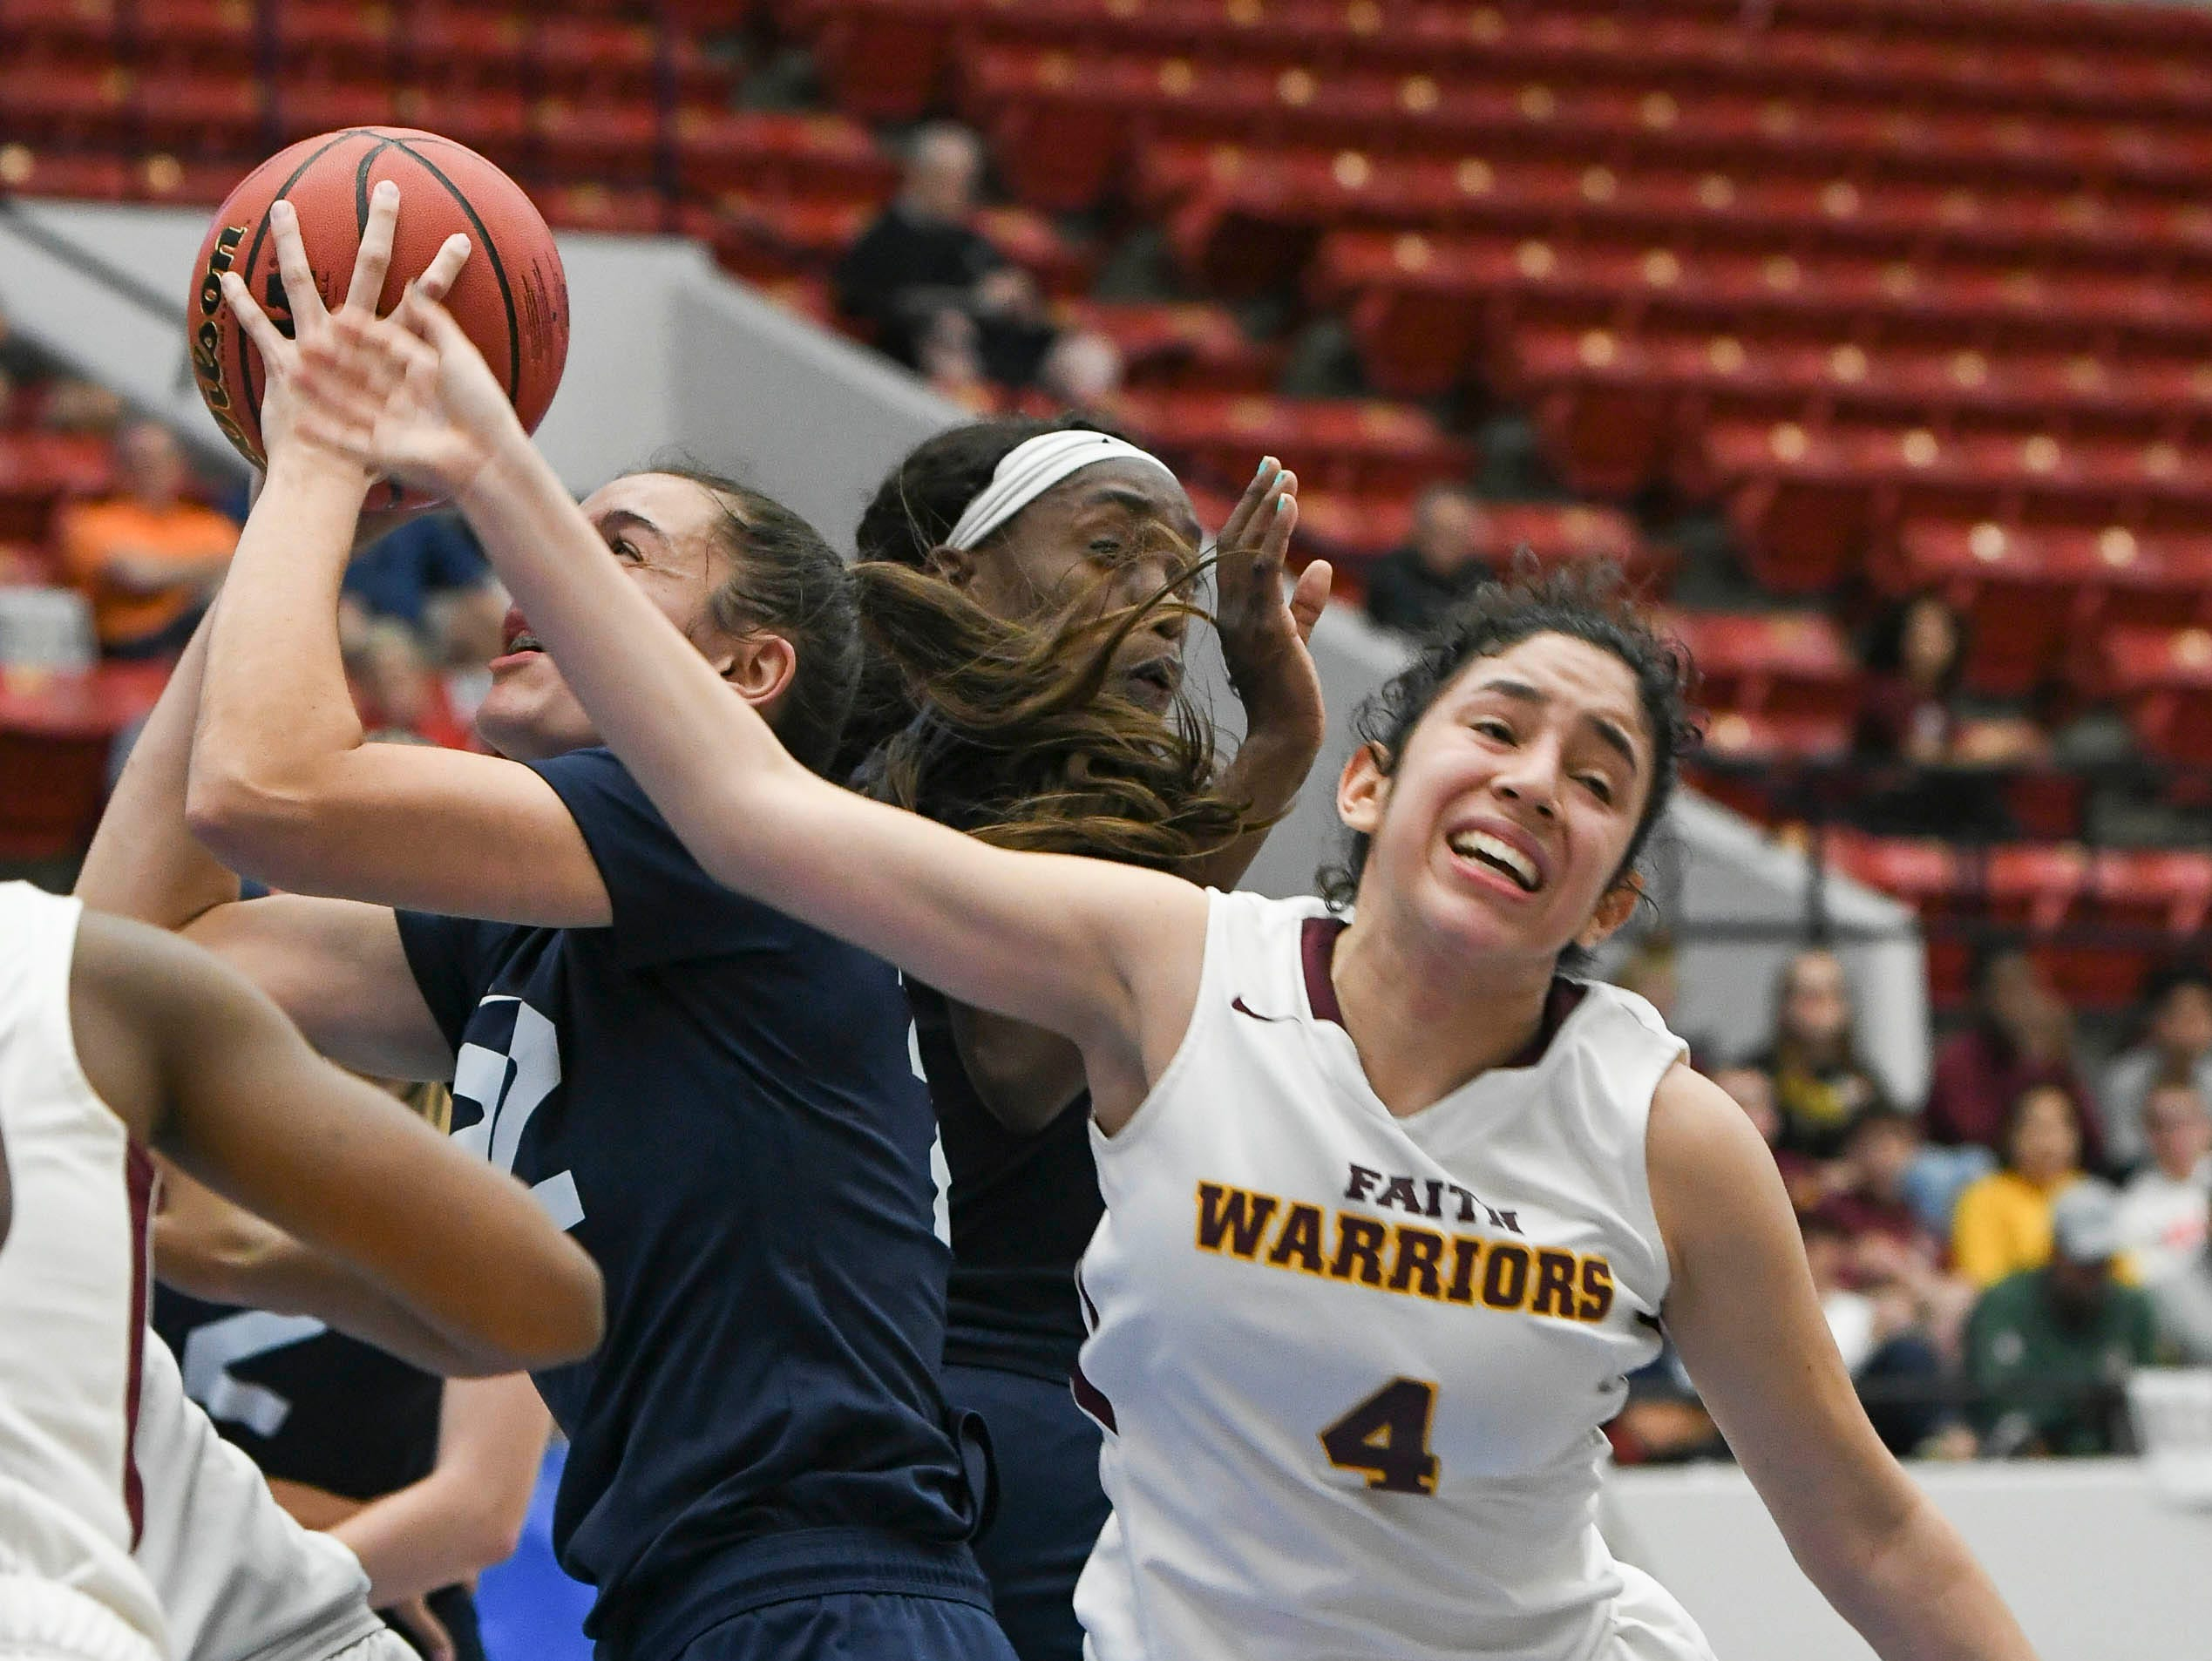 Aleah Sorrentino of Florida Prep (22) grabs a rebound from Domenica Zamora of Bayshore Christian during Tuesday's Class 2A state championship game.